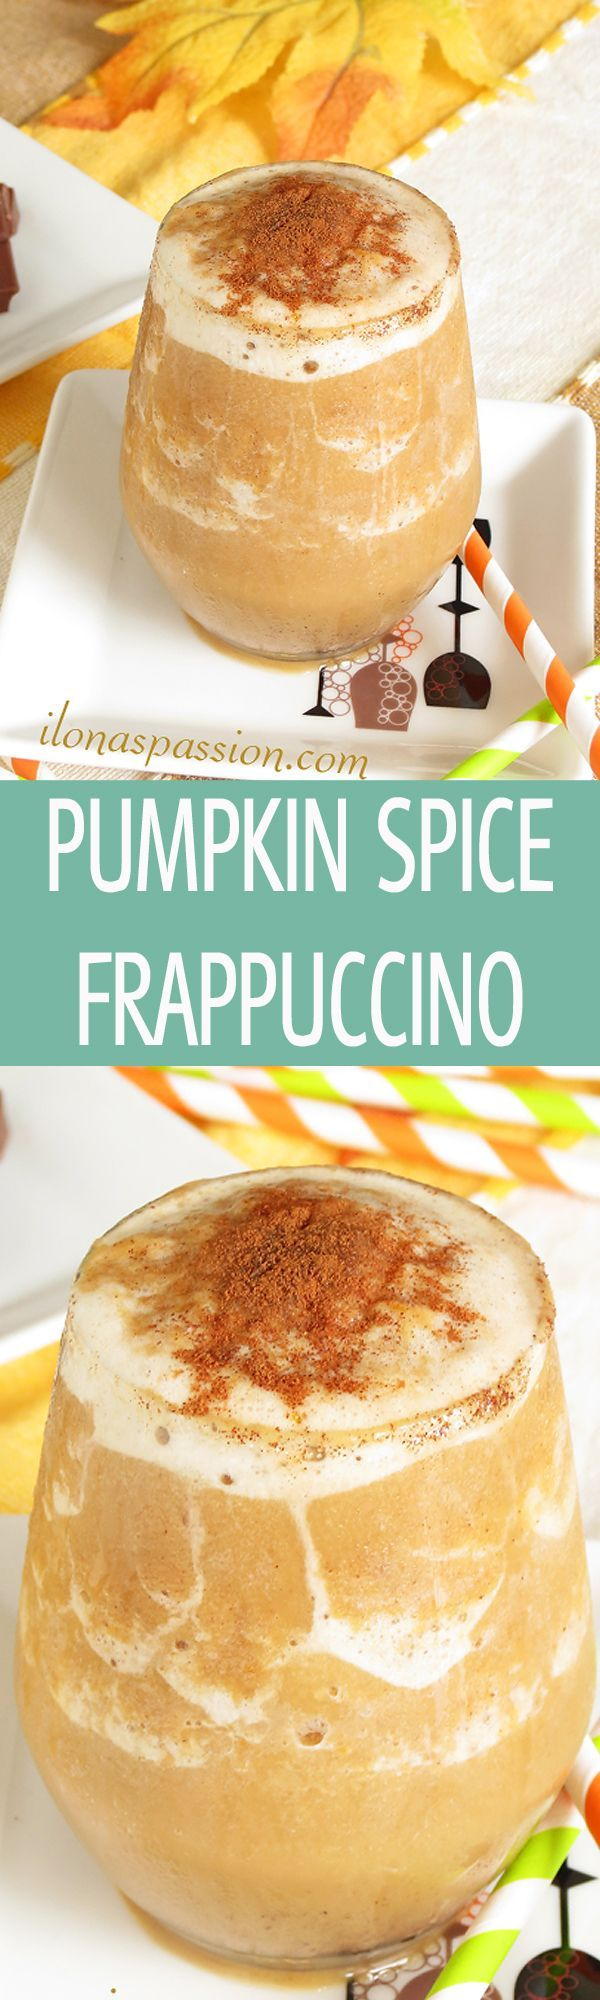 Pumpkin Spice Frappuccino - easy to make autumn pumpkin frappuccino recipe with cinnamon. Healthy, vegan, skinny and delicious! by http://ilonaspassion.com I /ilonaspassion/